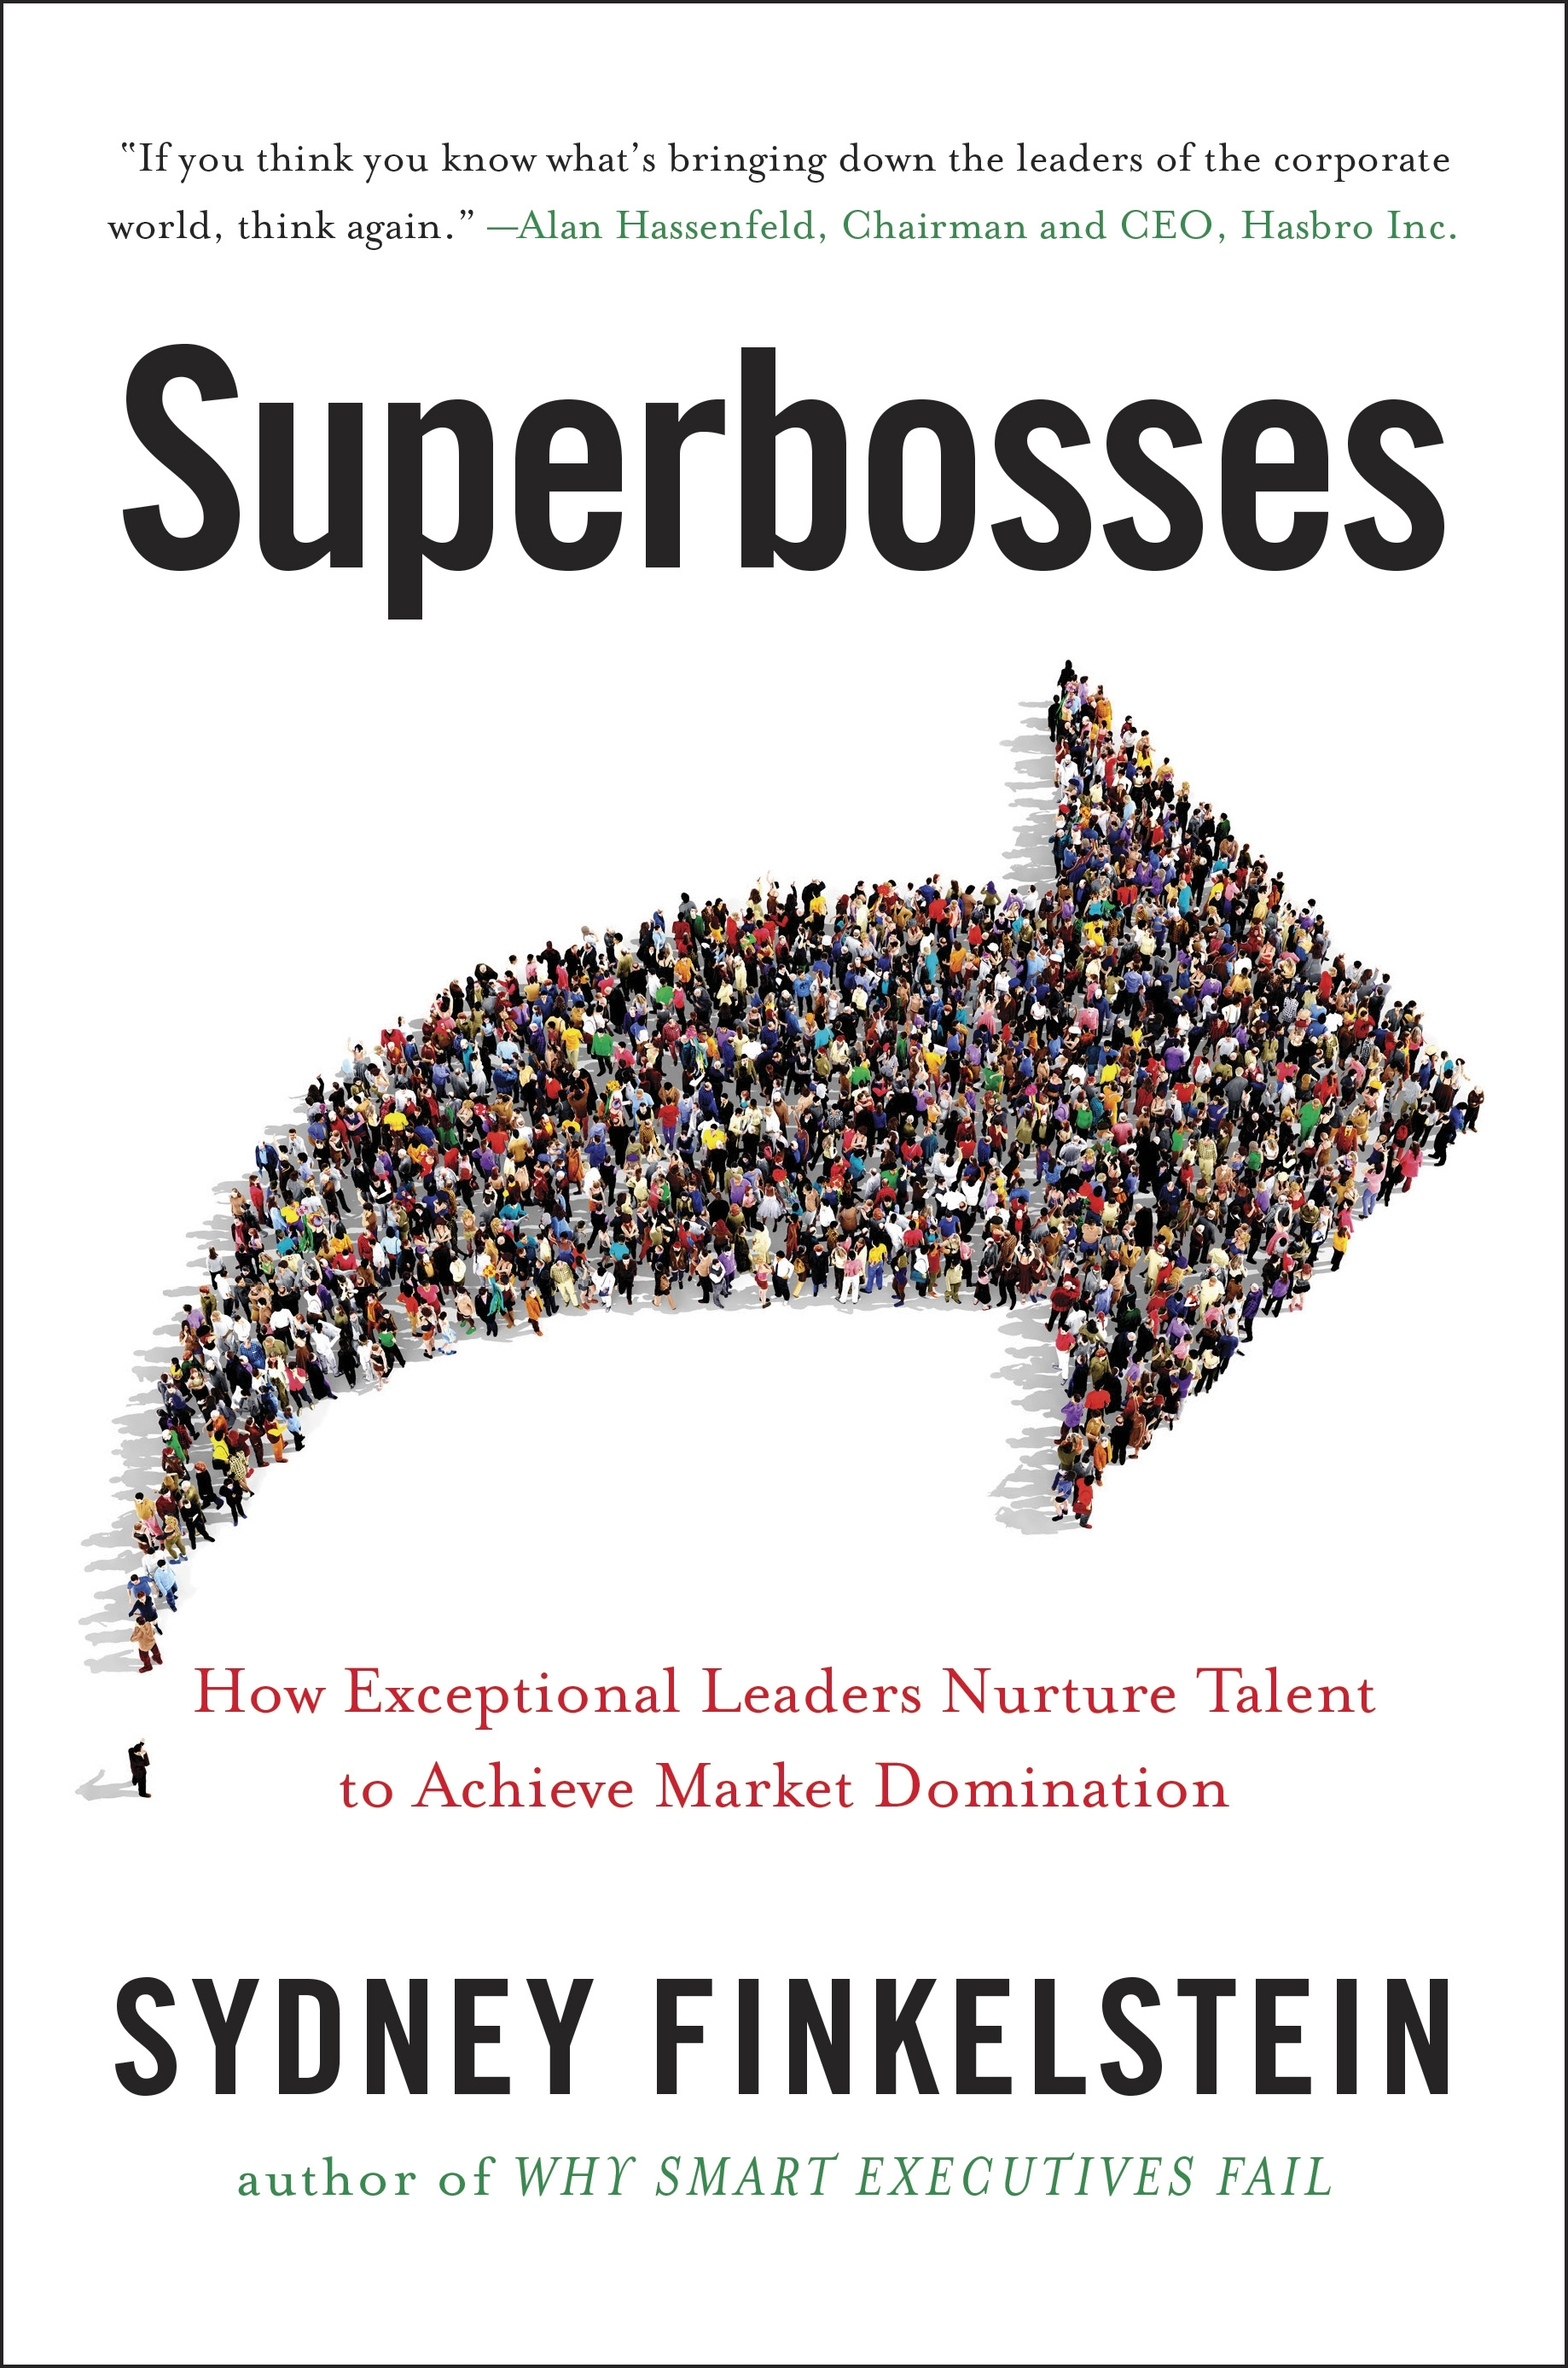 Superbosses by Sydney Finkelstein, ISBN: 9780241245453